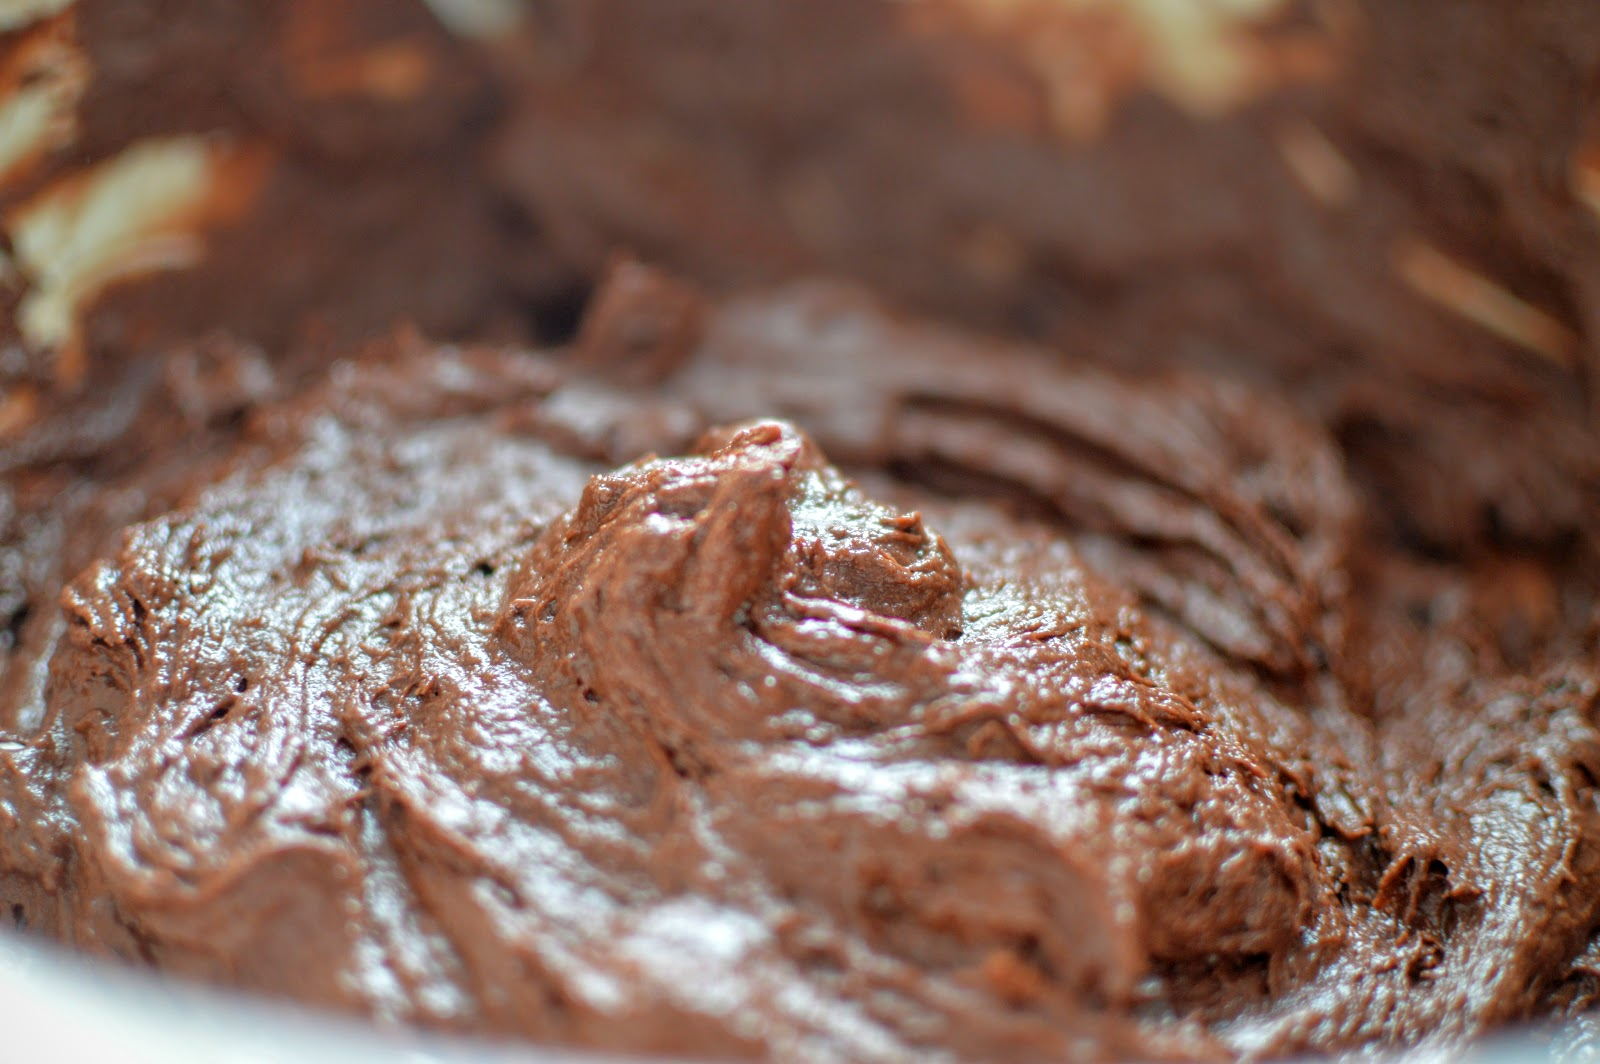 Fairtrade Vegan Chocolate and Banana Cake Recipe